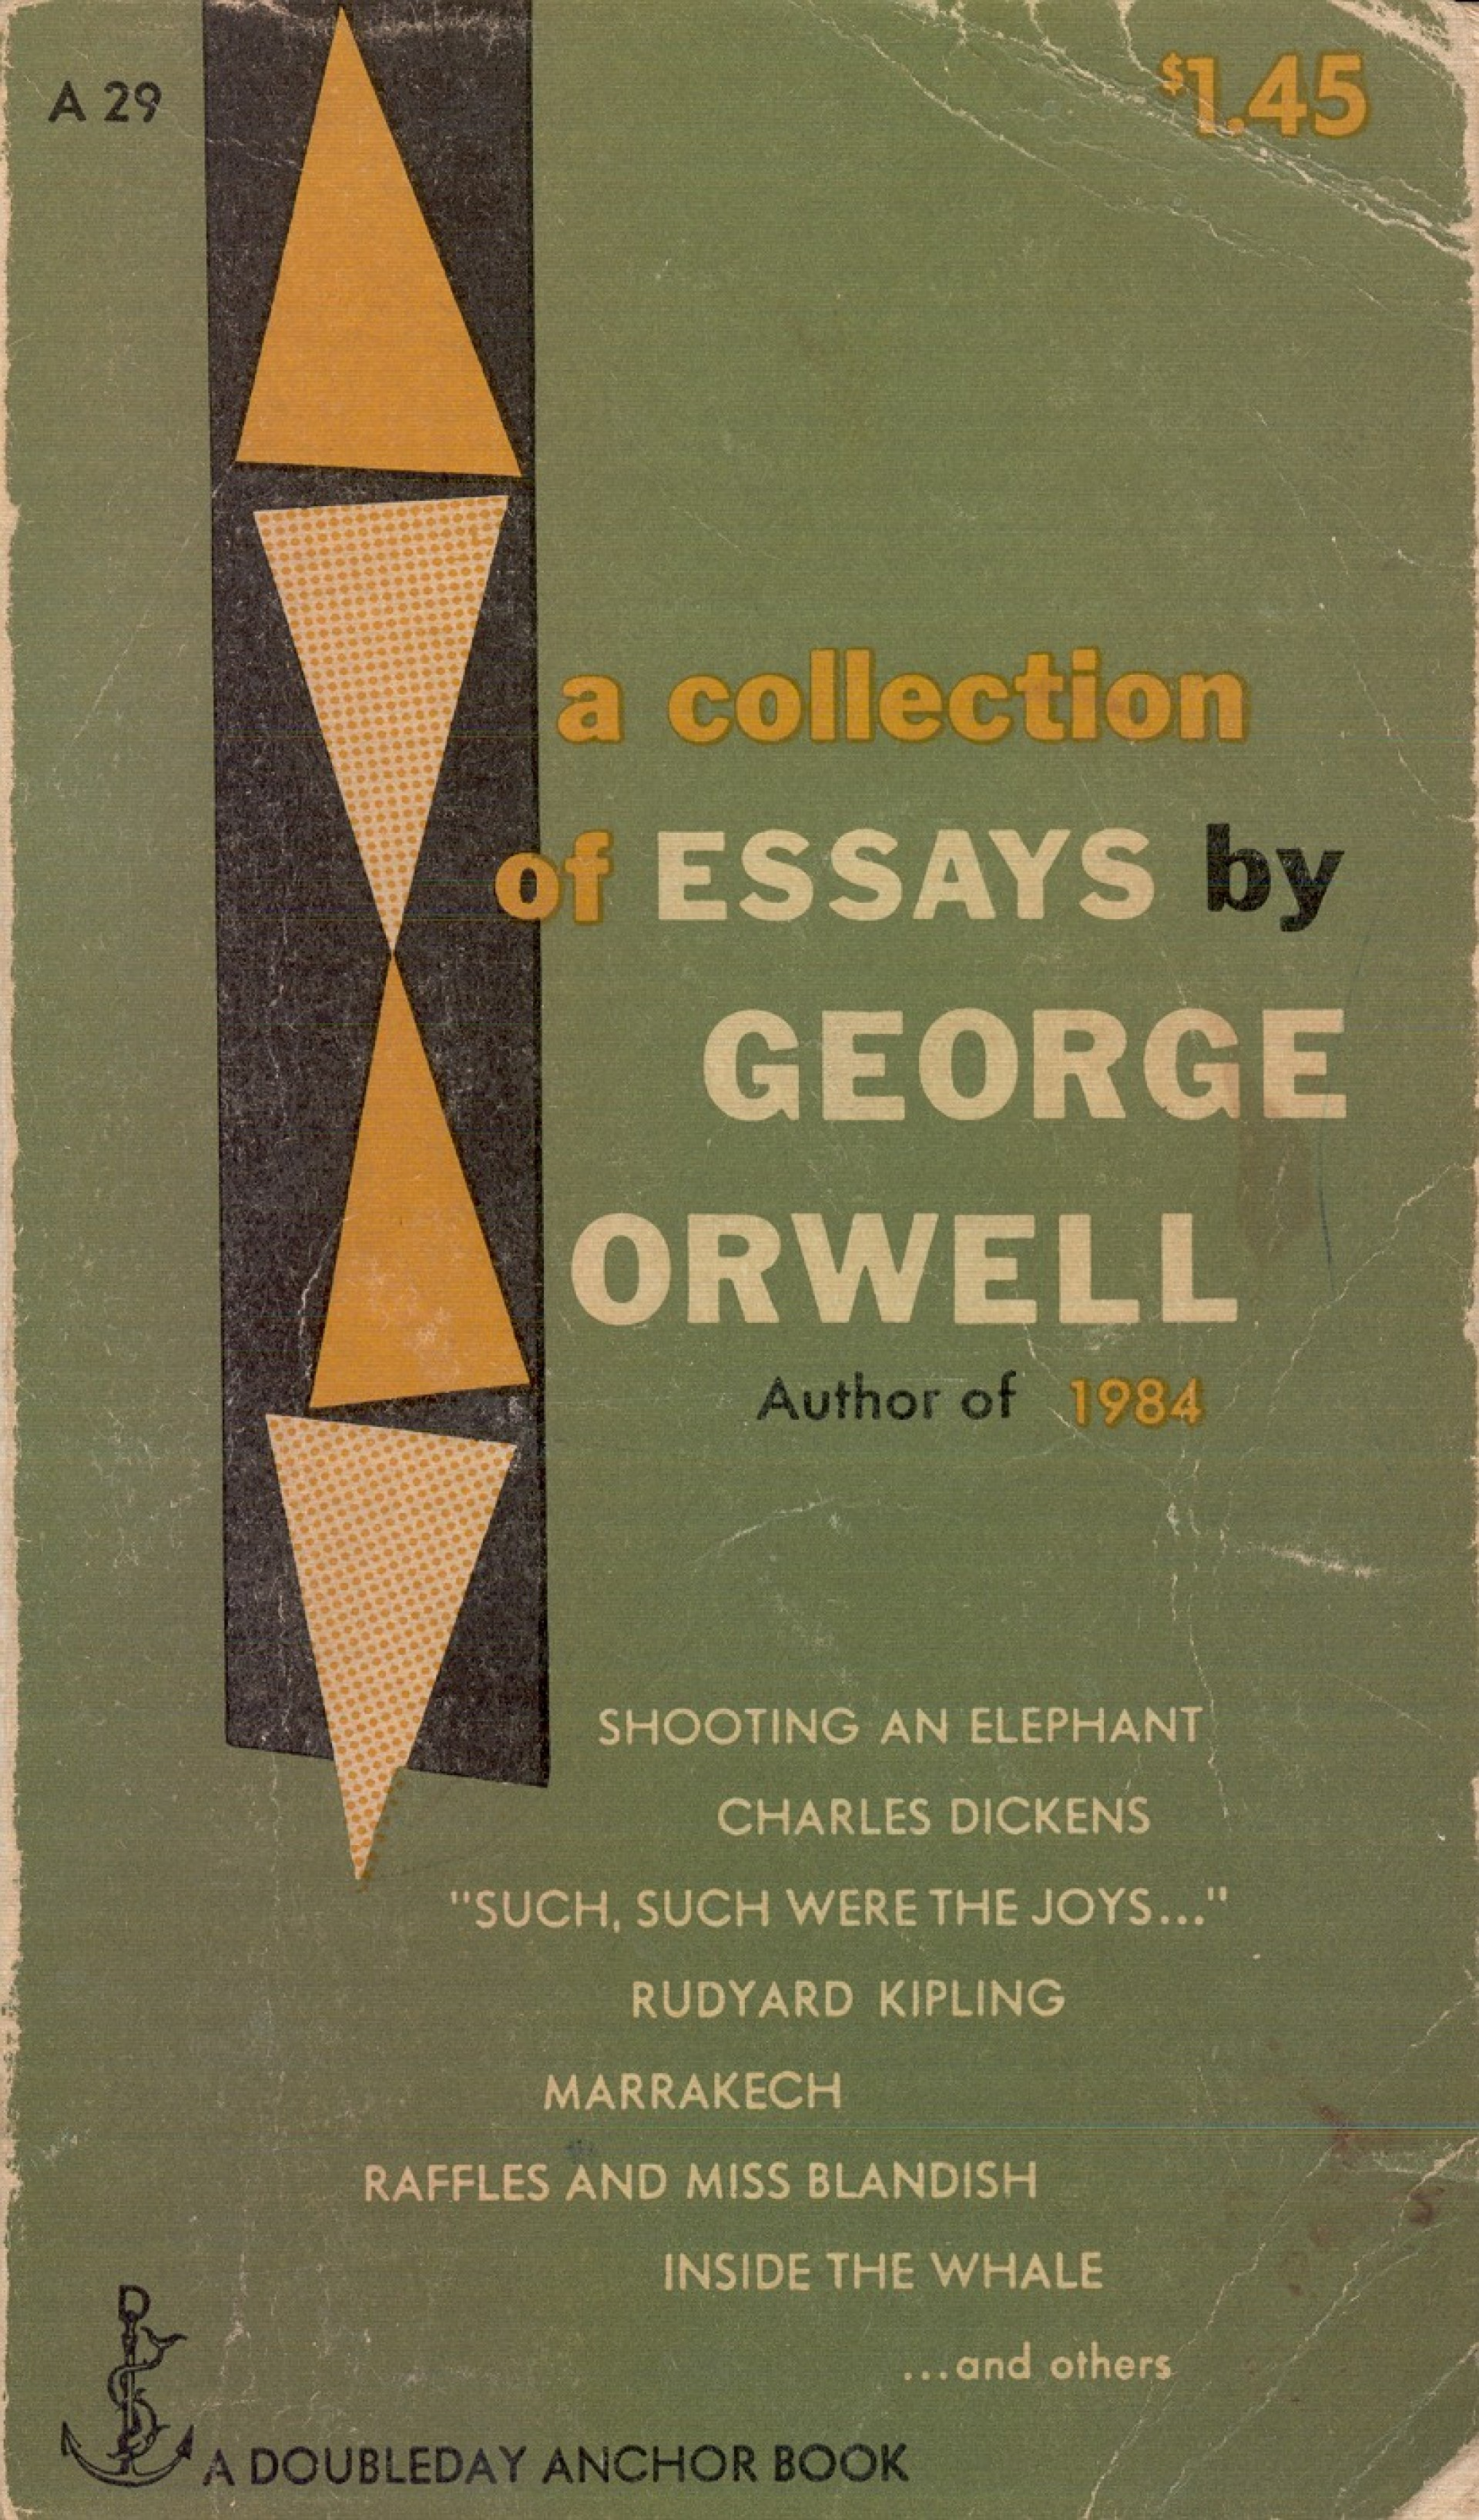 019 Essay Example Orwell George Frightening Essays 1984 Summary Collected Pdf On Writing 1920